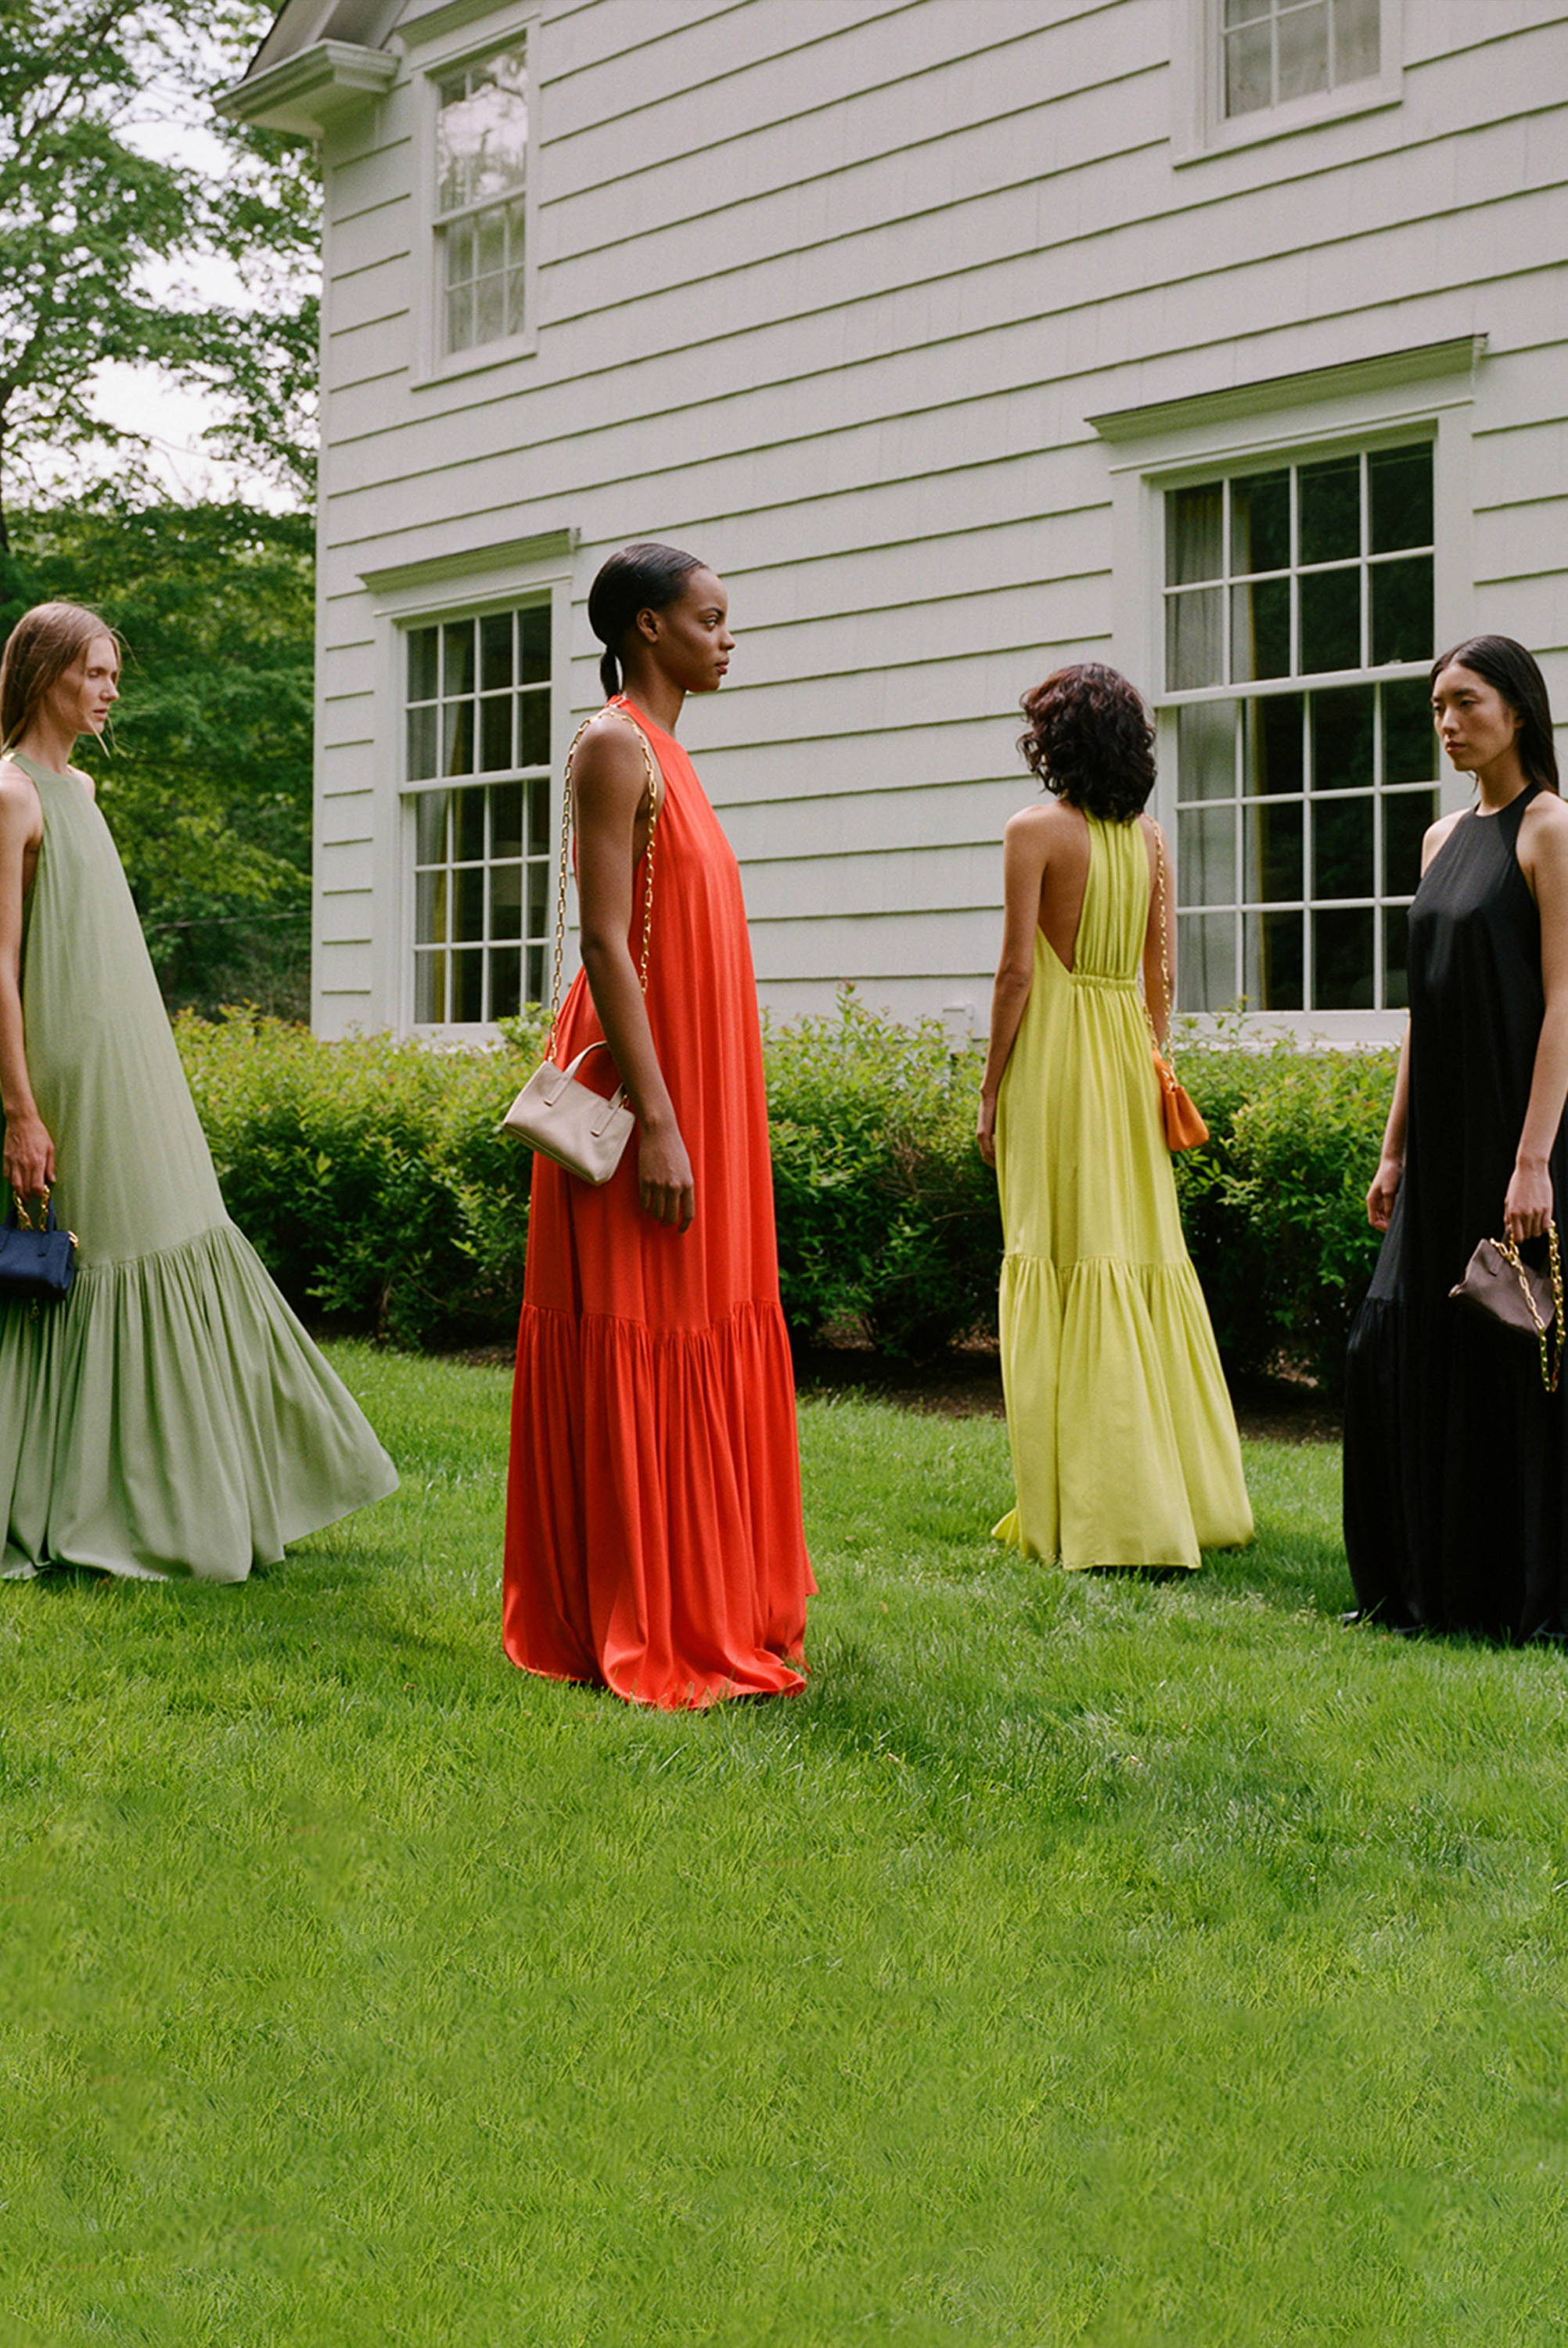 Four models standing in front of a white house all wearing the Heavy Silk CDC Halter dress from Resort 2020.